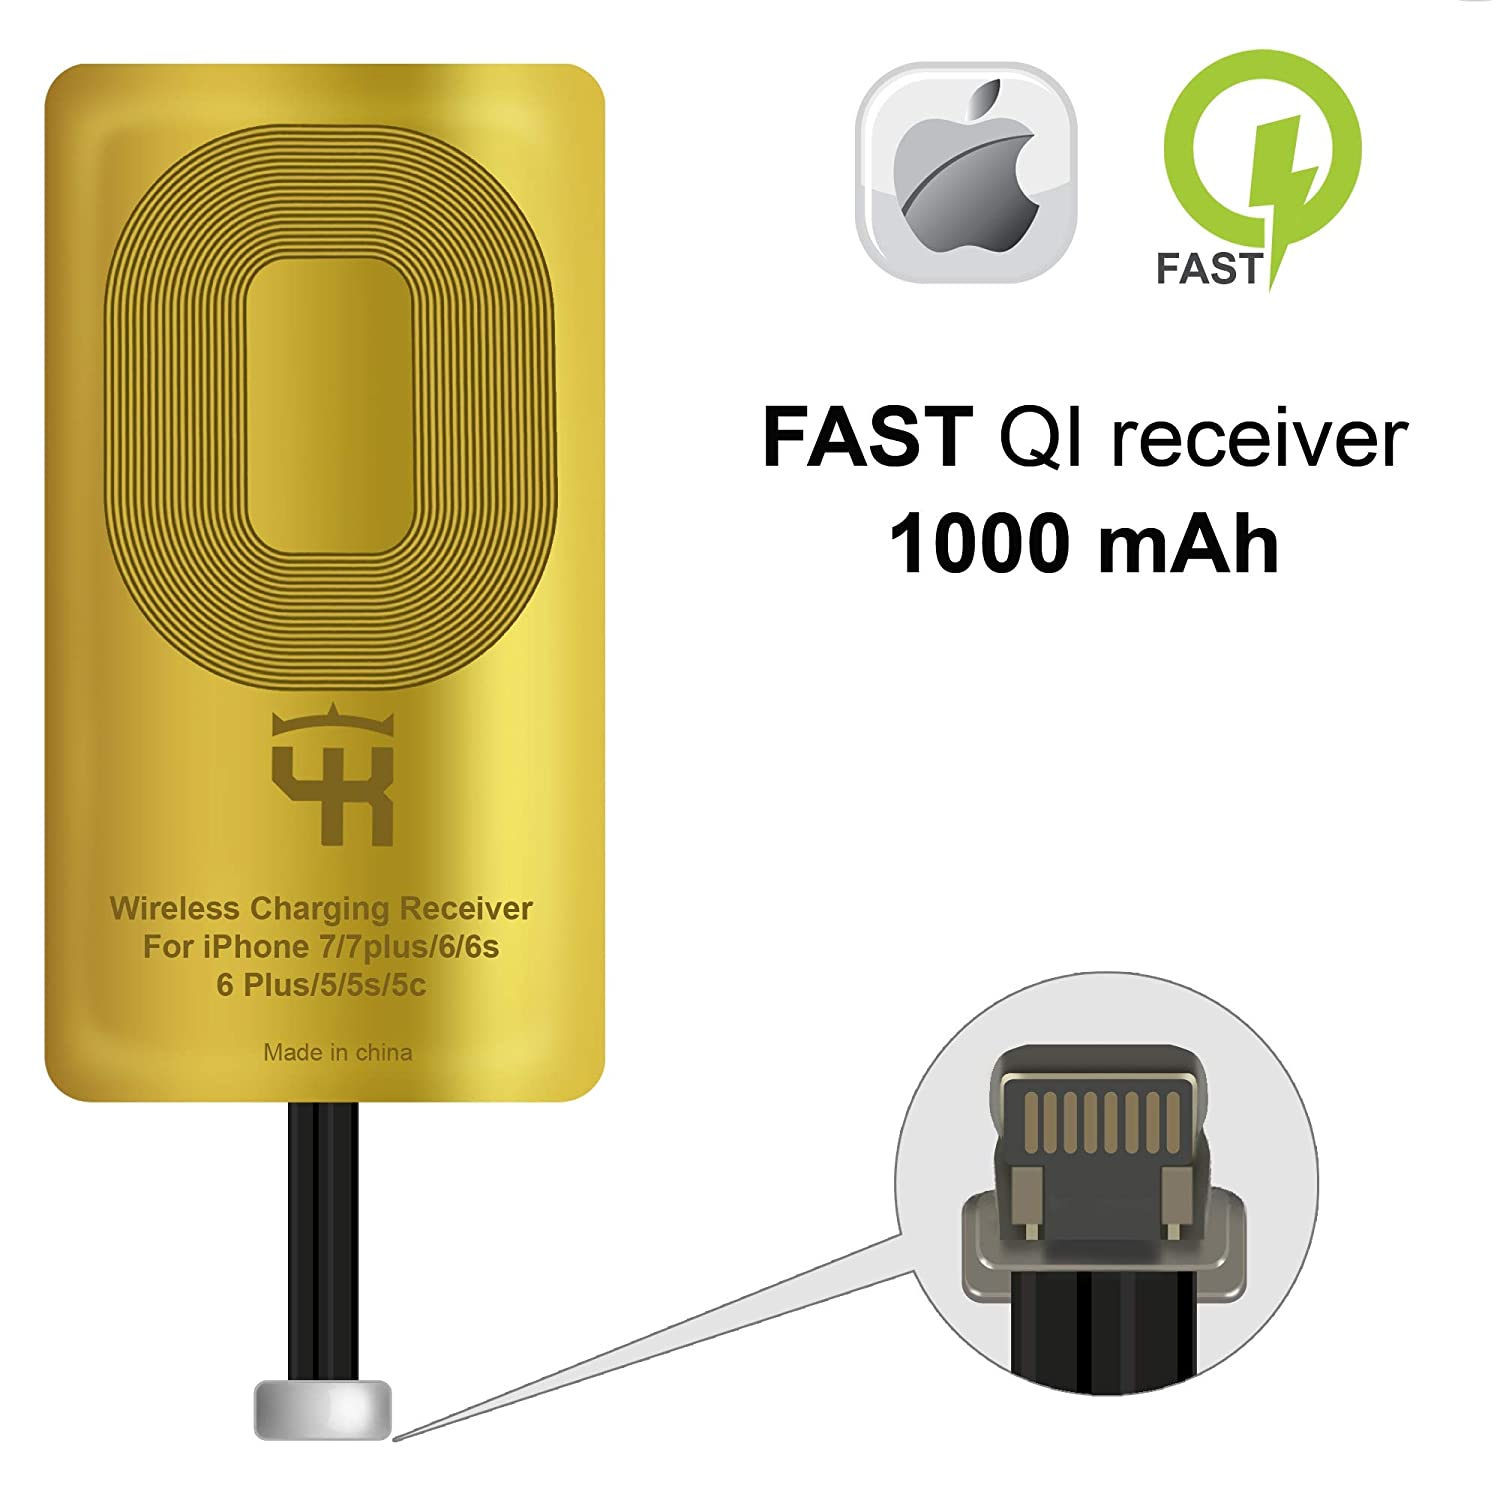 QI Receiver Compatible with iPhone 5-5c- SE- 6-6 Plus- 7-7 Plus- YKing iPhone Wireless Receiver- QI Receiver- Charging Receiver - QI Wireless Receiver iPhone- QI Receiver Adapter